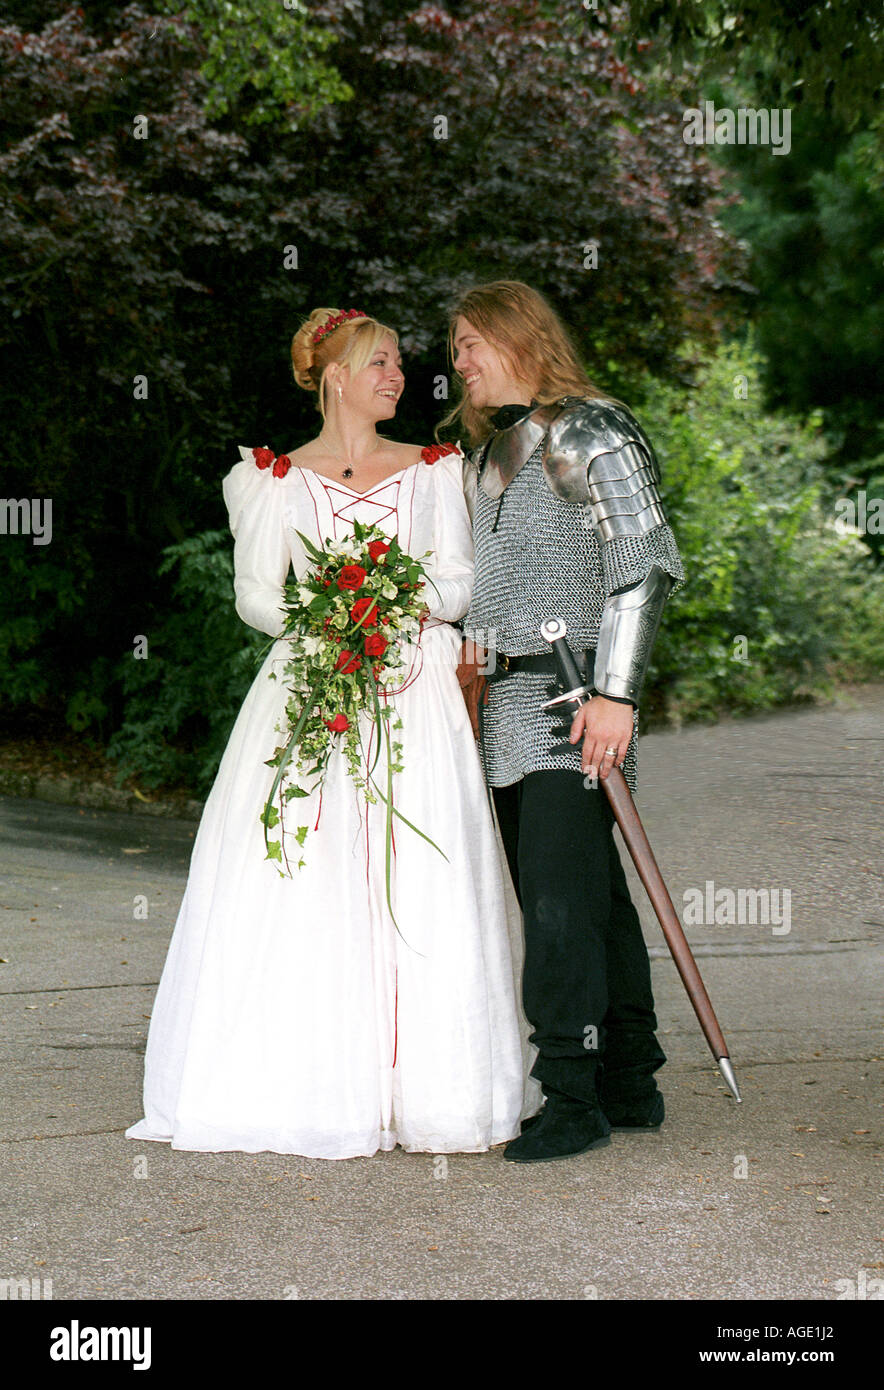 Bride and her 'knight in shining armour' - Stock Image